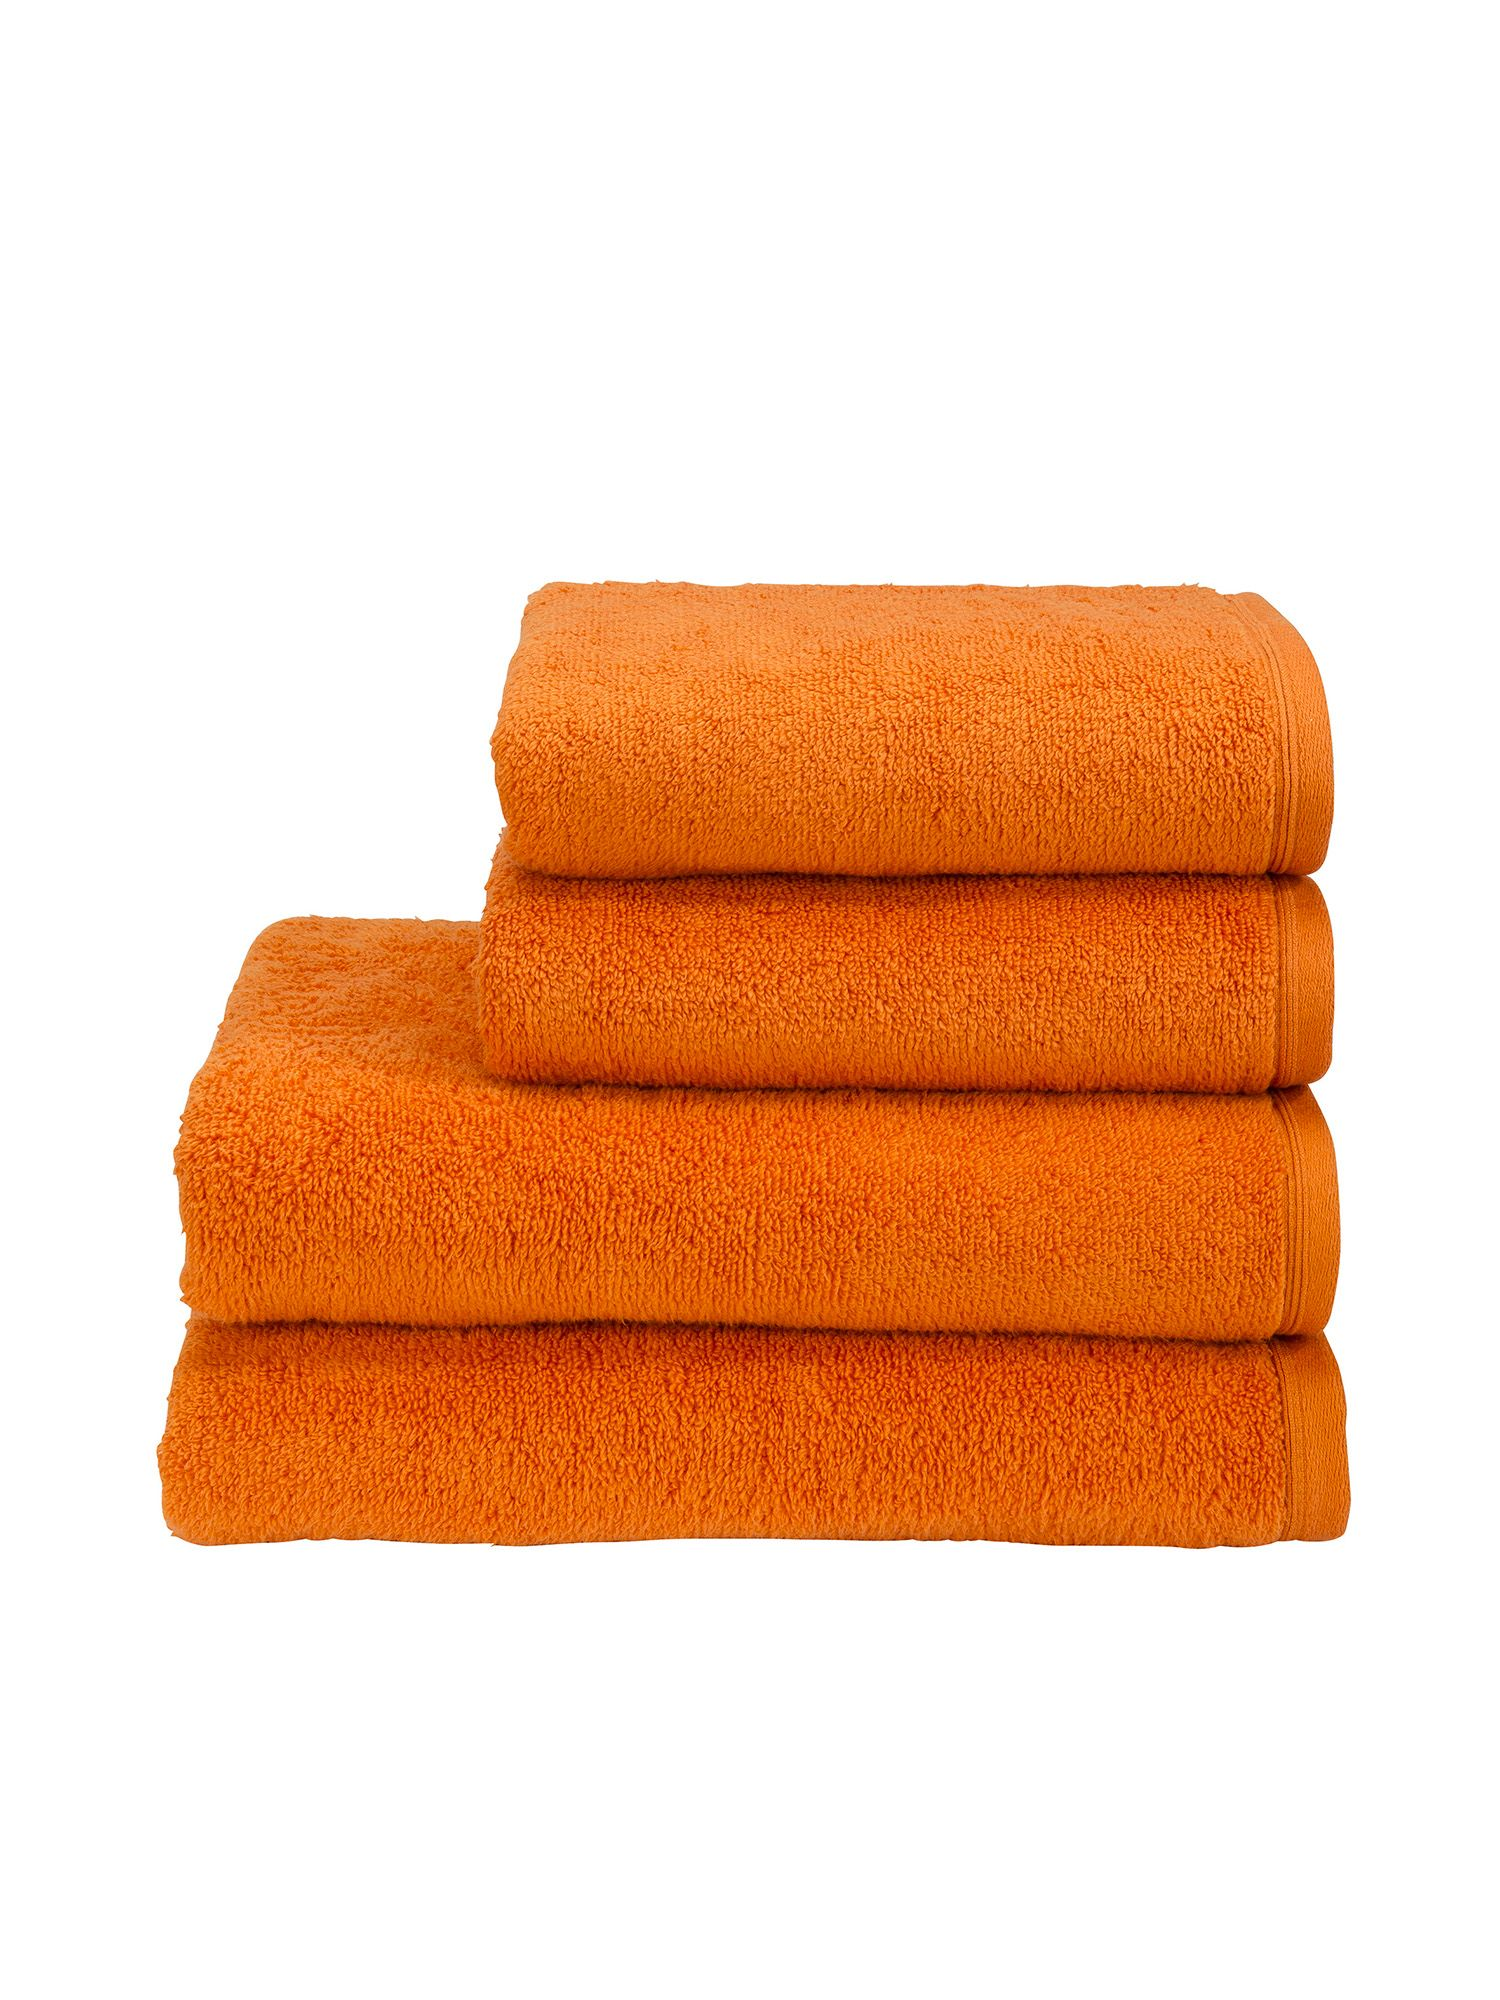 Revive towels nectarine